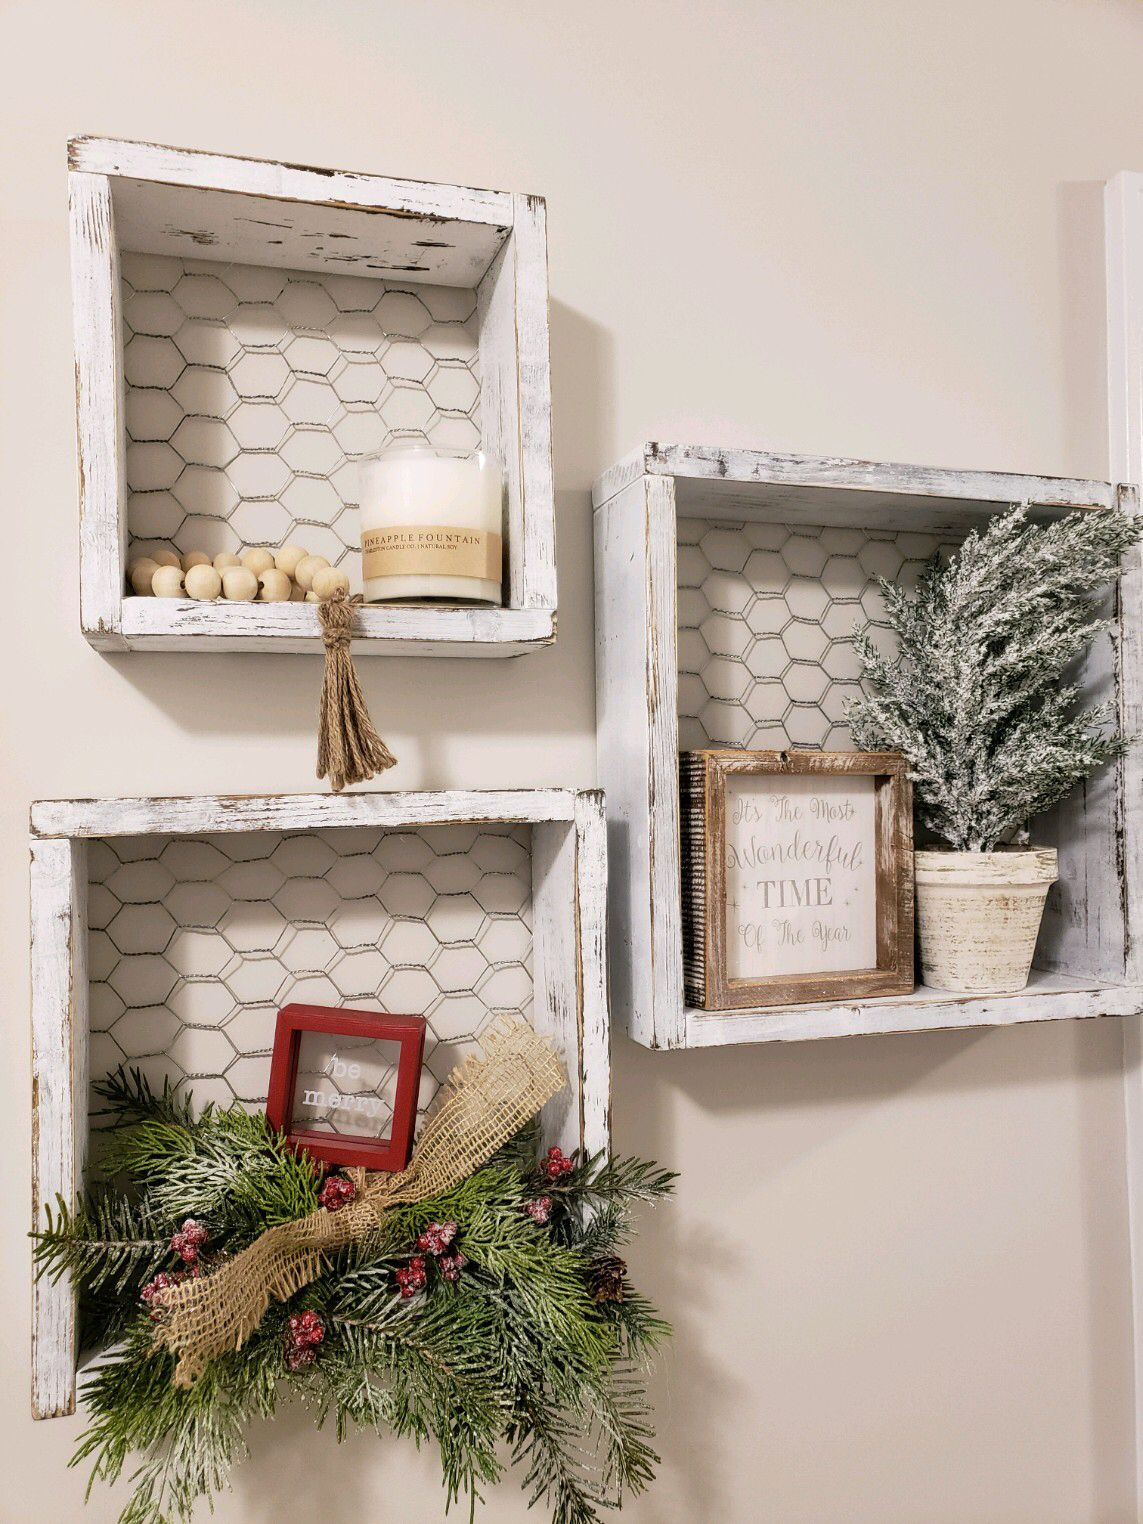 Check Out These Cute Shelves In Our Etsy Shop Along With Much